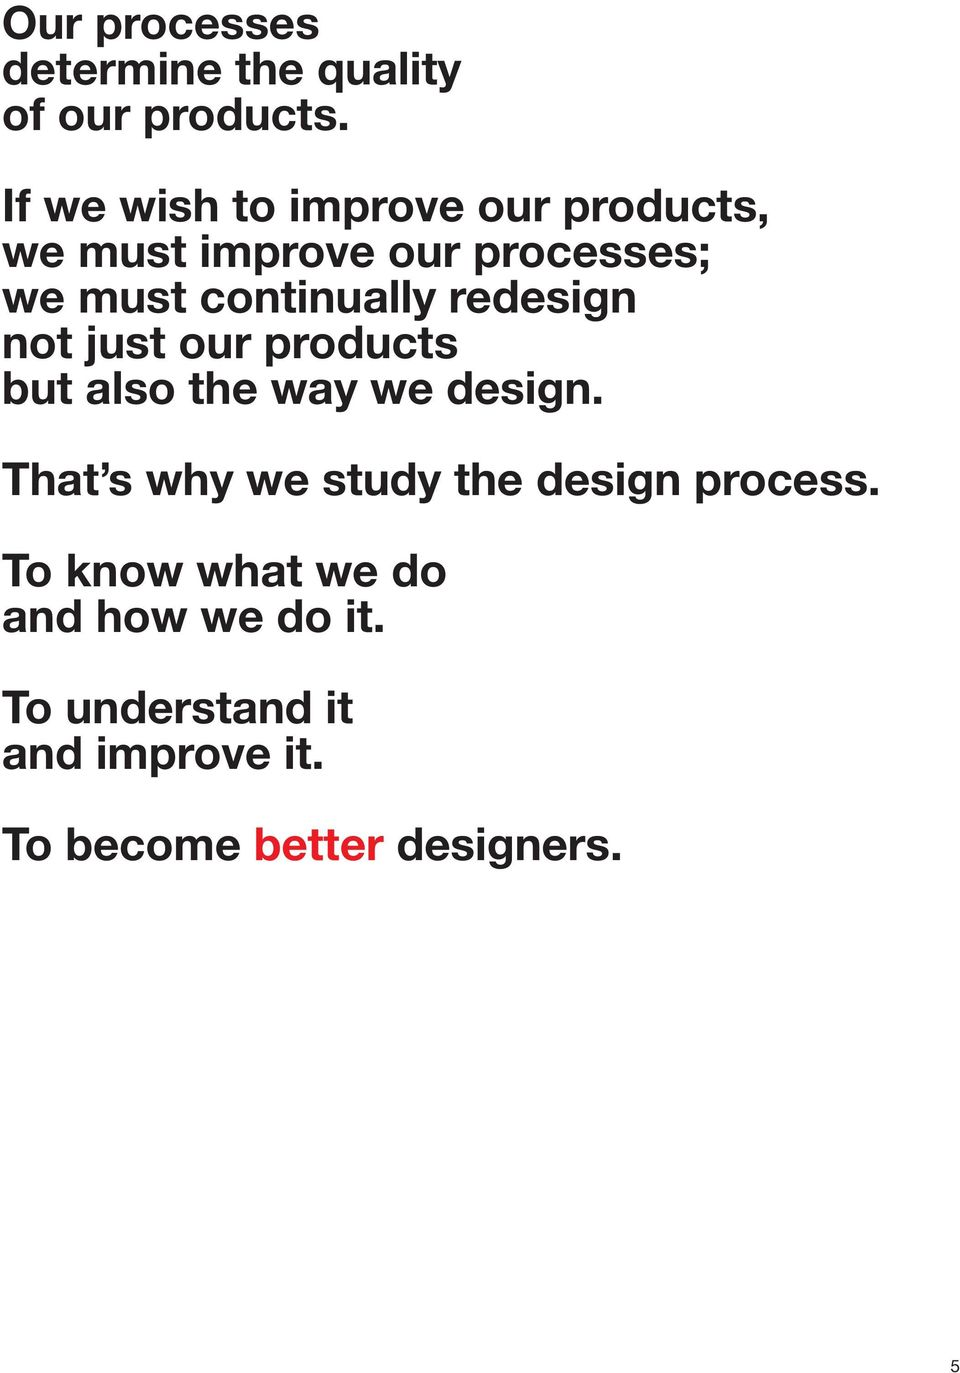 continually redesign not just our products but also the way we design.